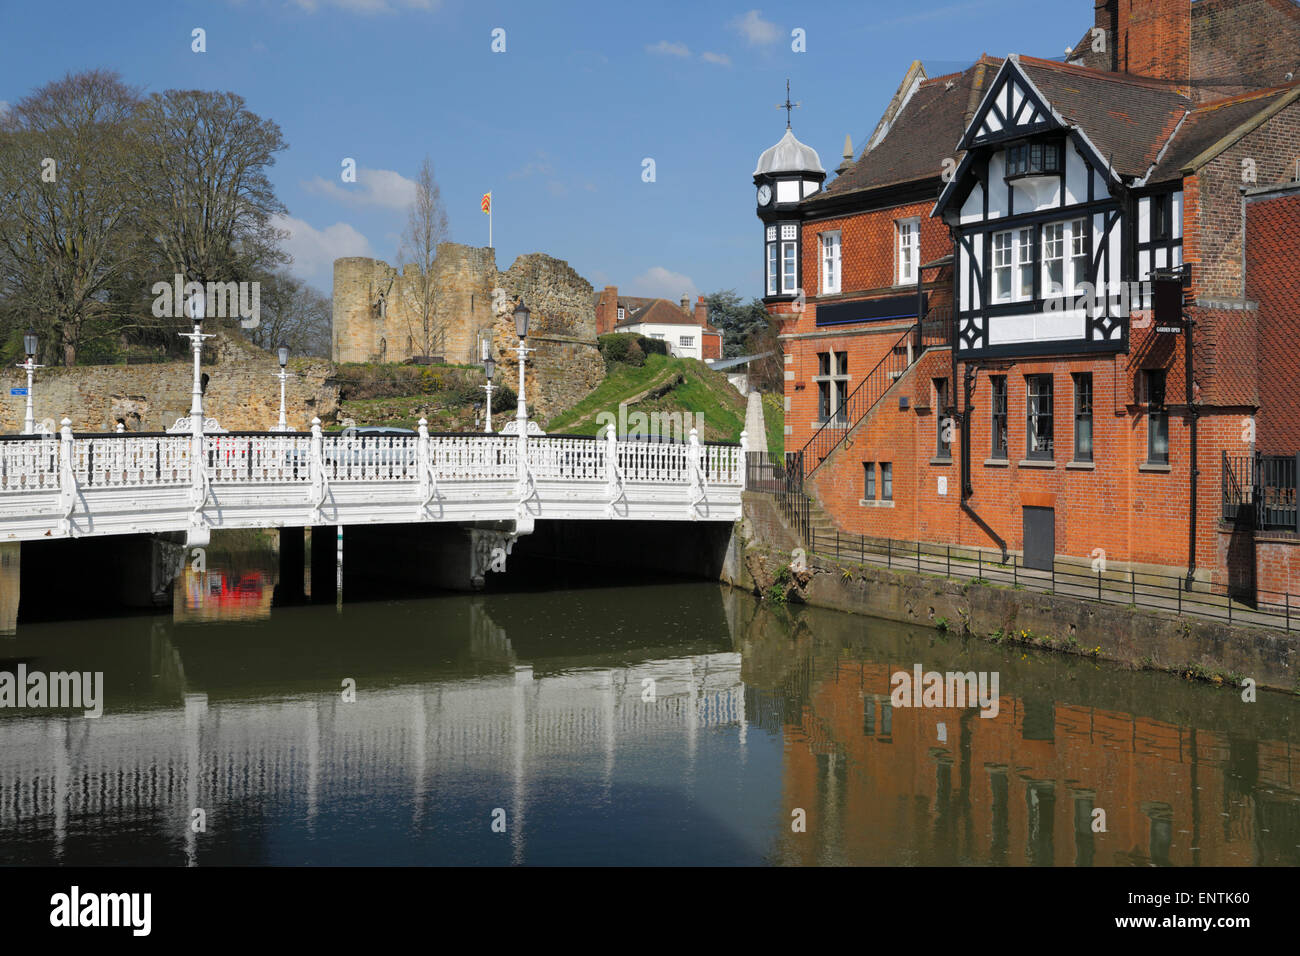 Tonbridge Castle and River Medway, Tonbridge, Kent, England, United Kingdom, Europe - Stock Image